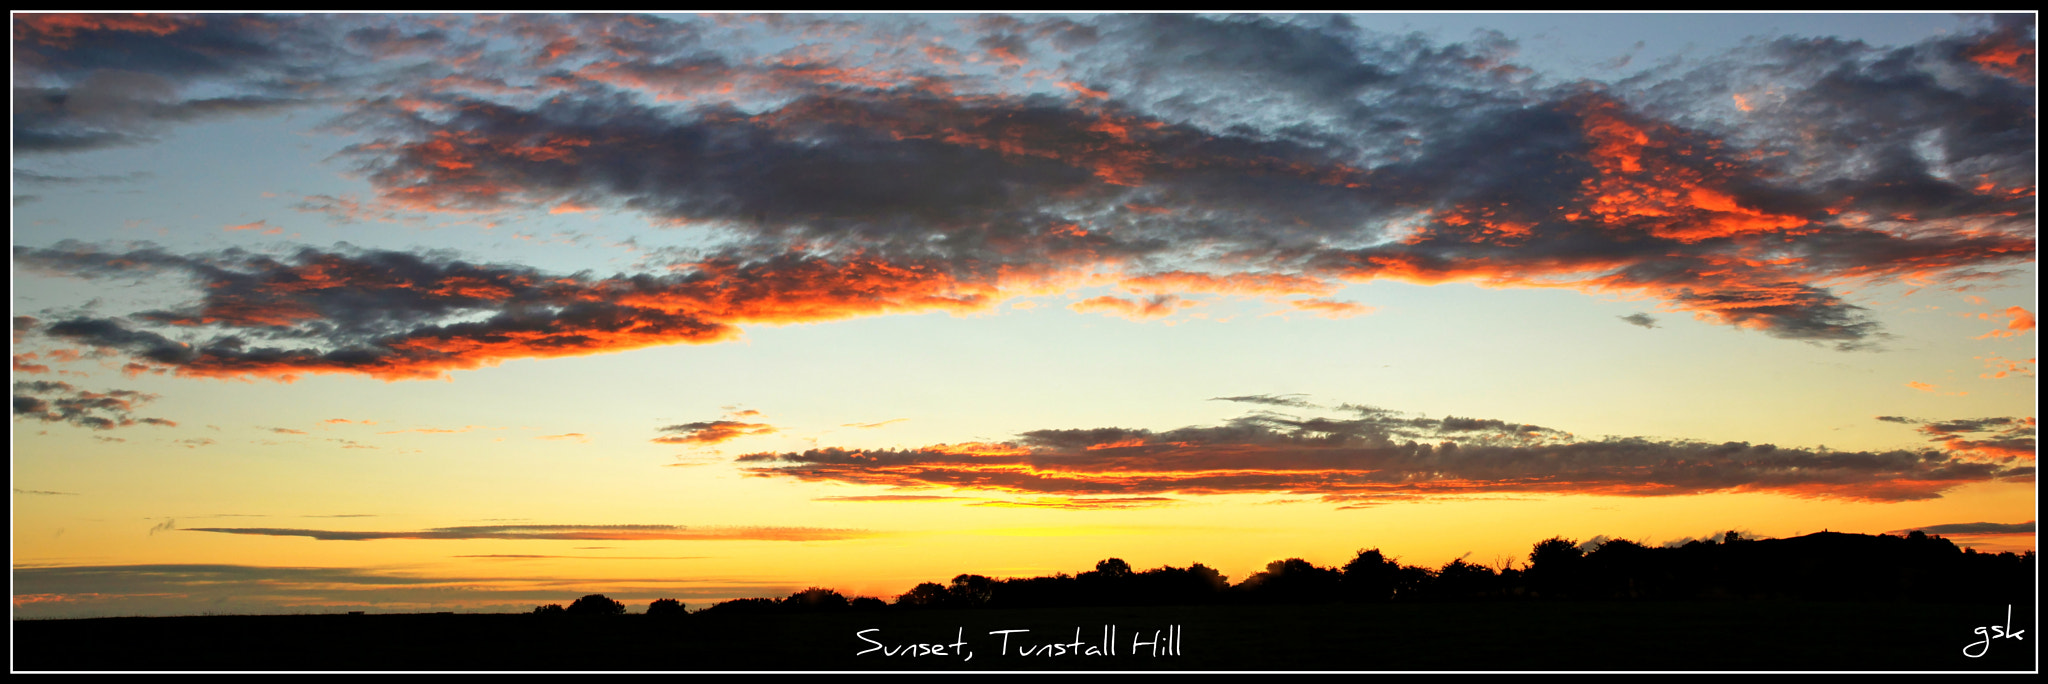 Photograph Sunset, Tunstall hill, Sunderland by Karthik Gellia on 500px